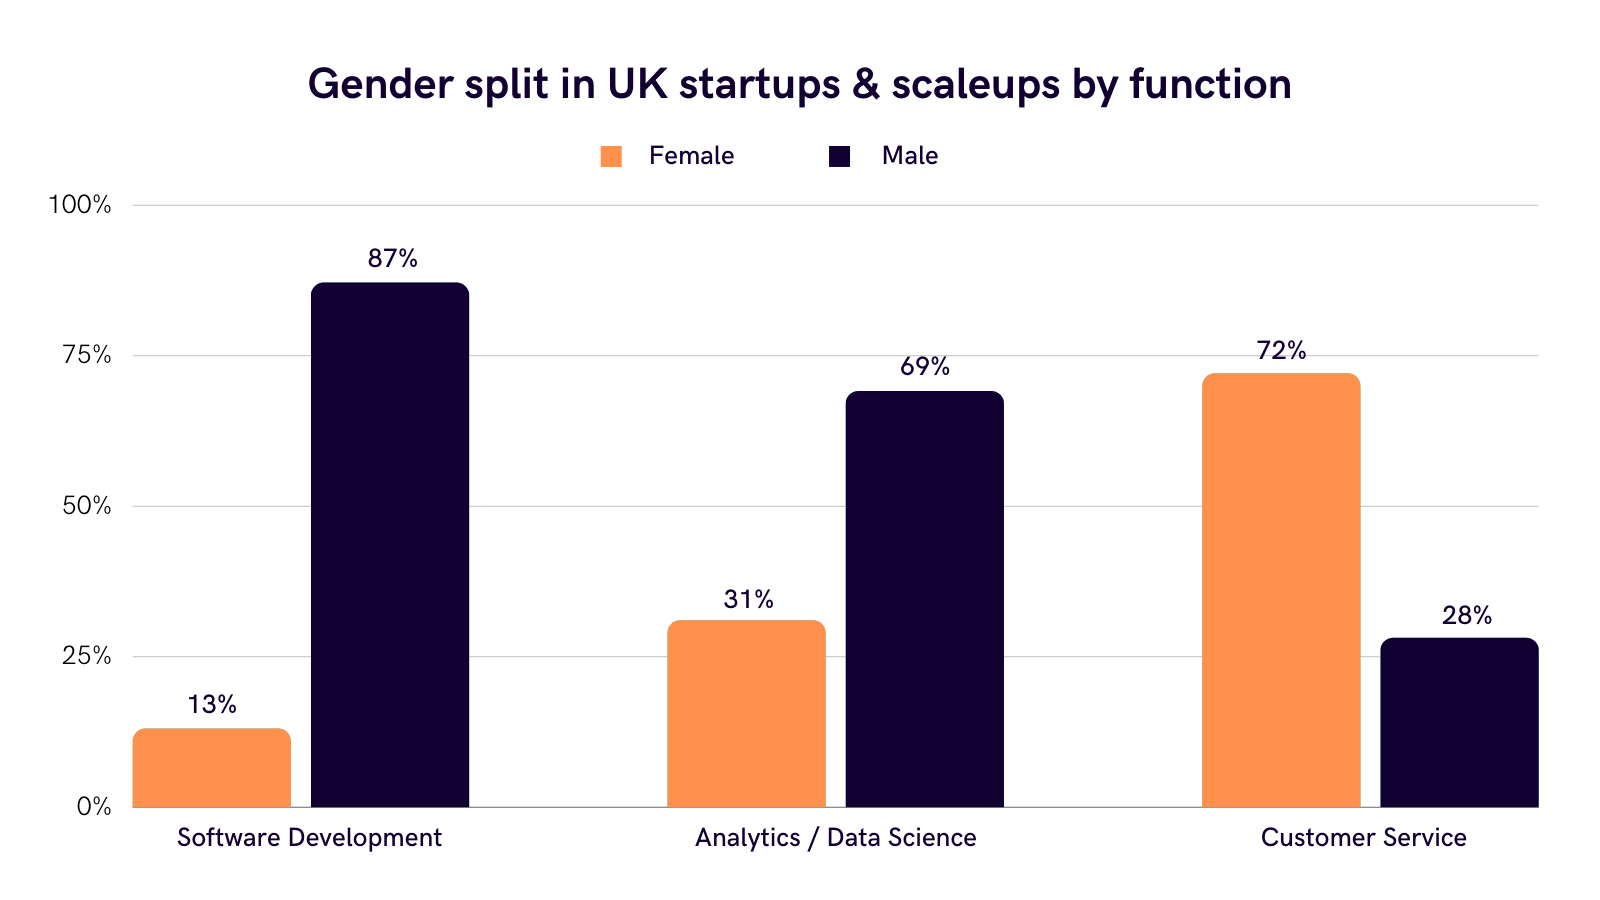 Another driver of the gender pay gap UK is that women are underrepresented in technical roles like Software Development which command high salaries